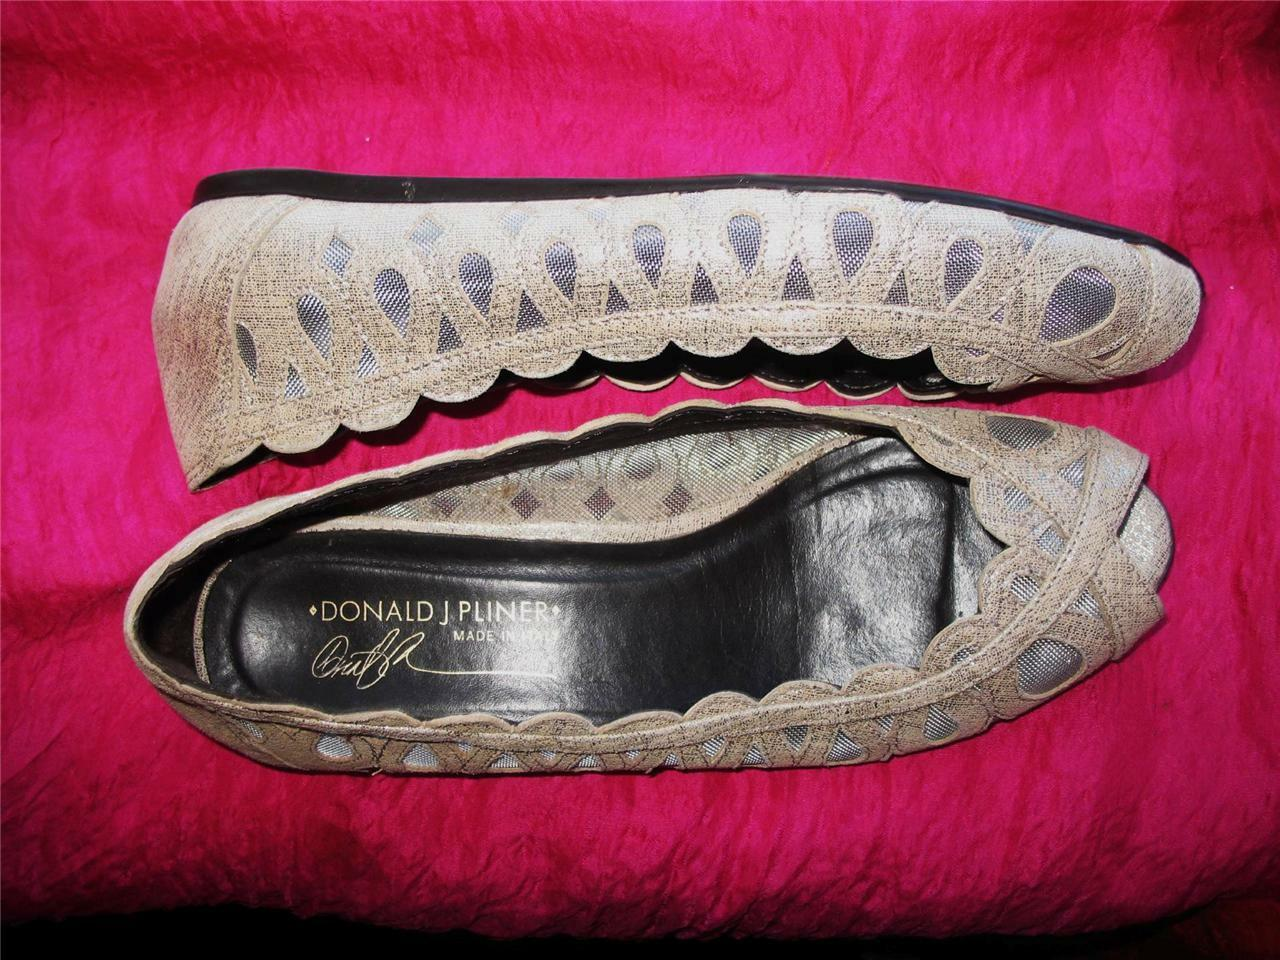 DONALD J PLINER Schuhe ELAMA SILVER  BALLET FLAT  SIZE 6,5 M/37  MADE IN ITALY